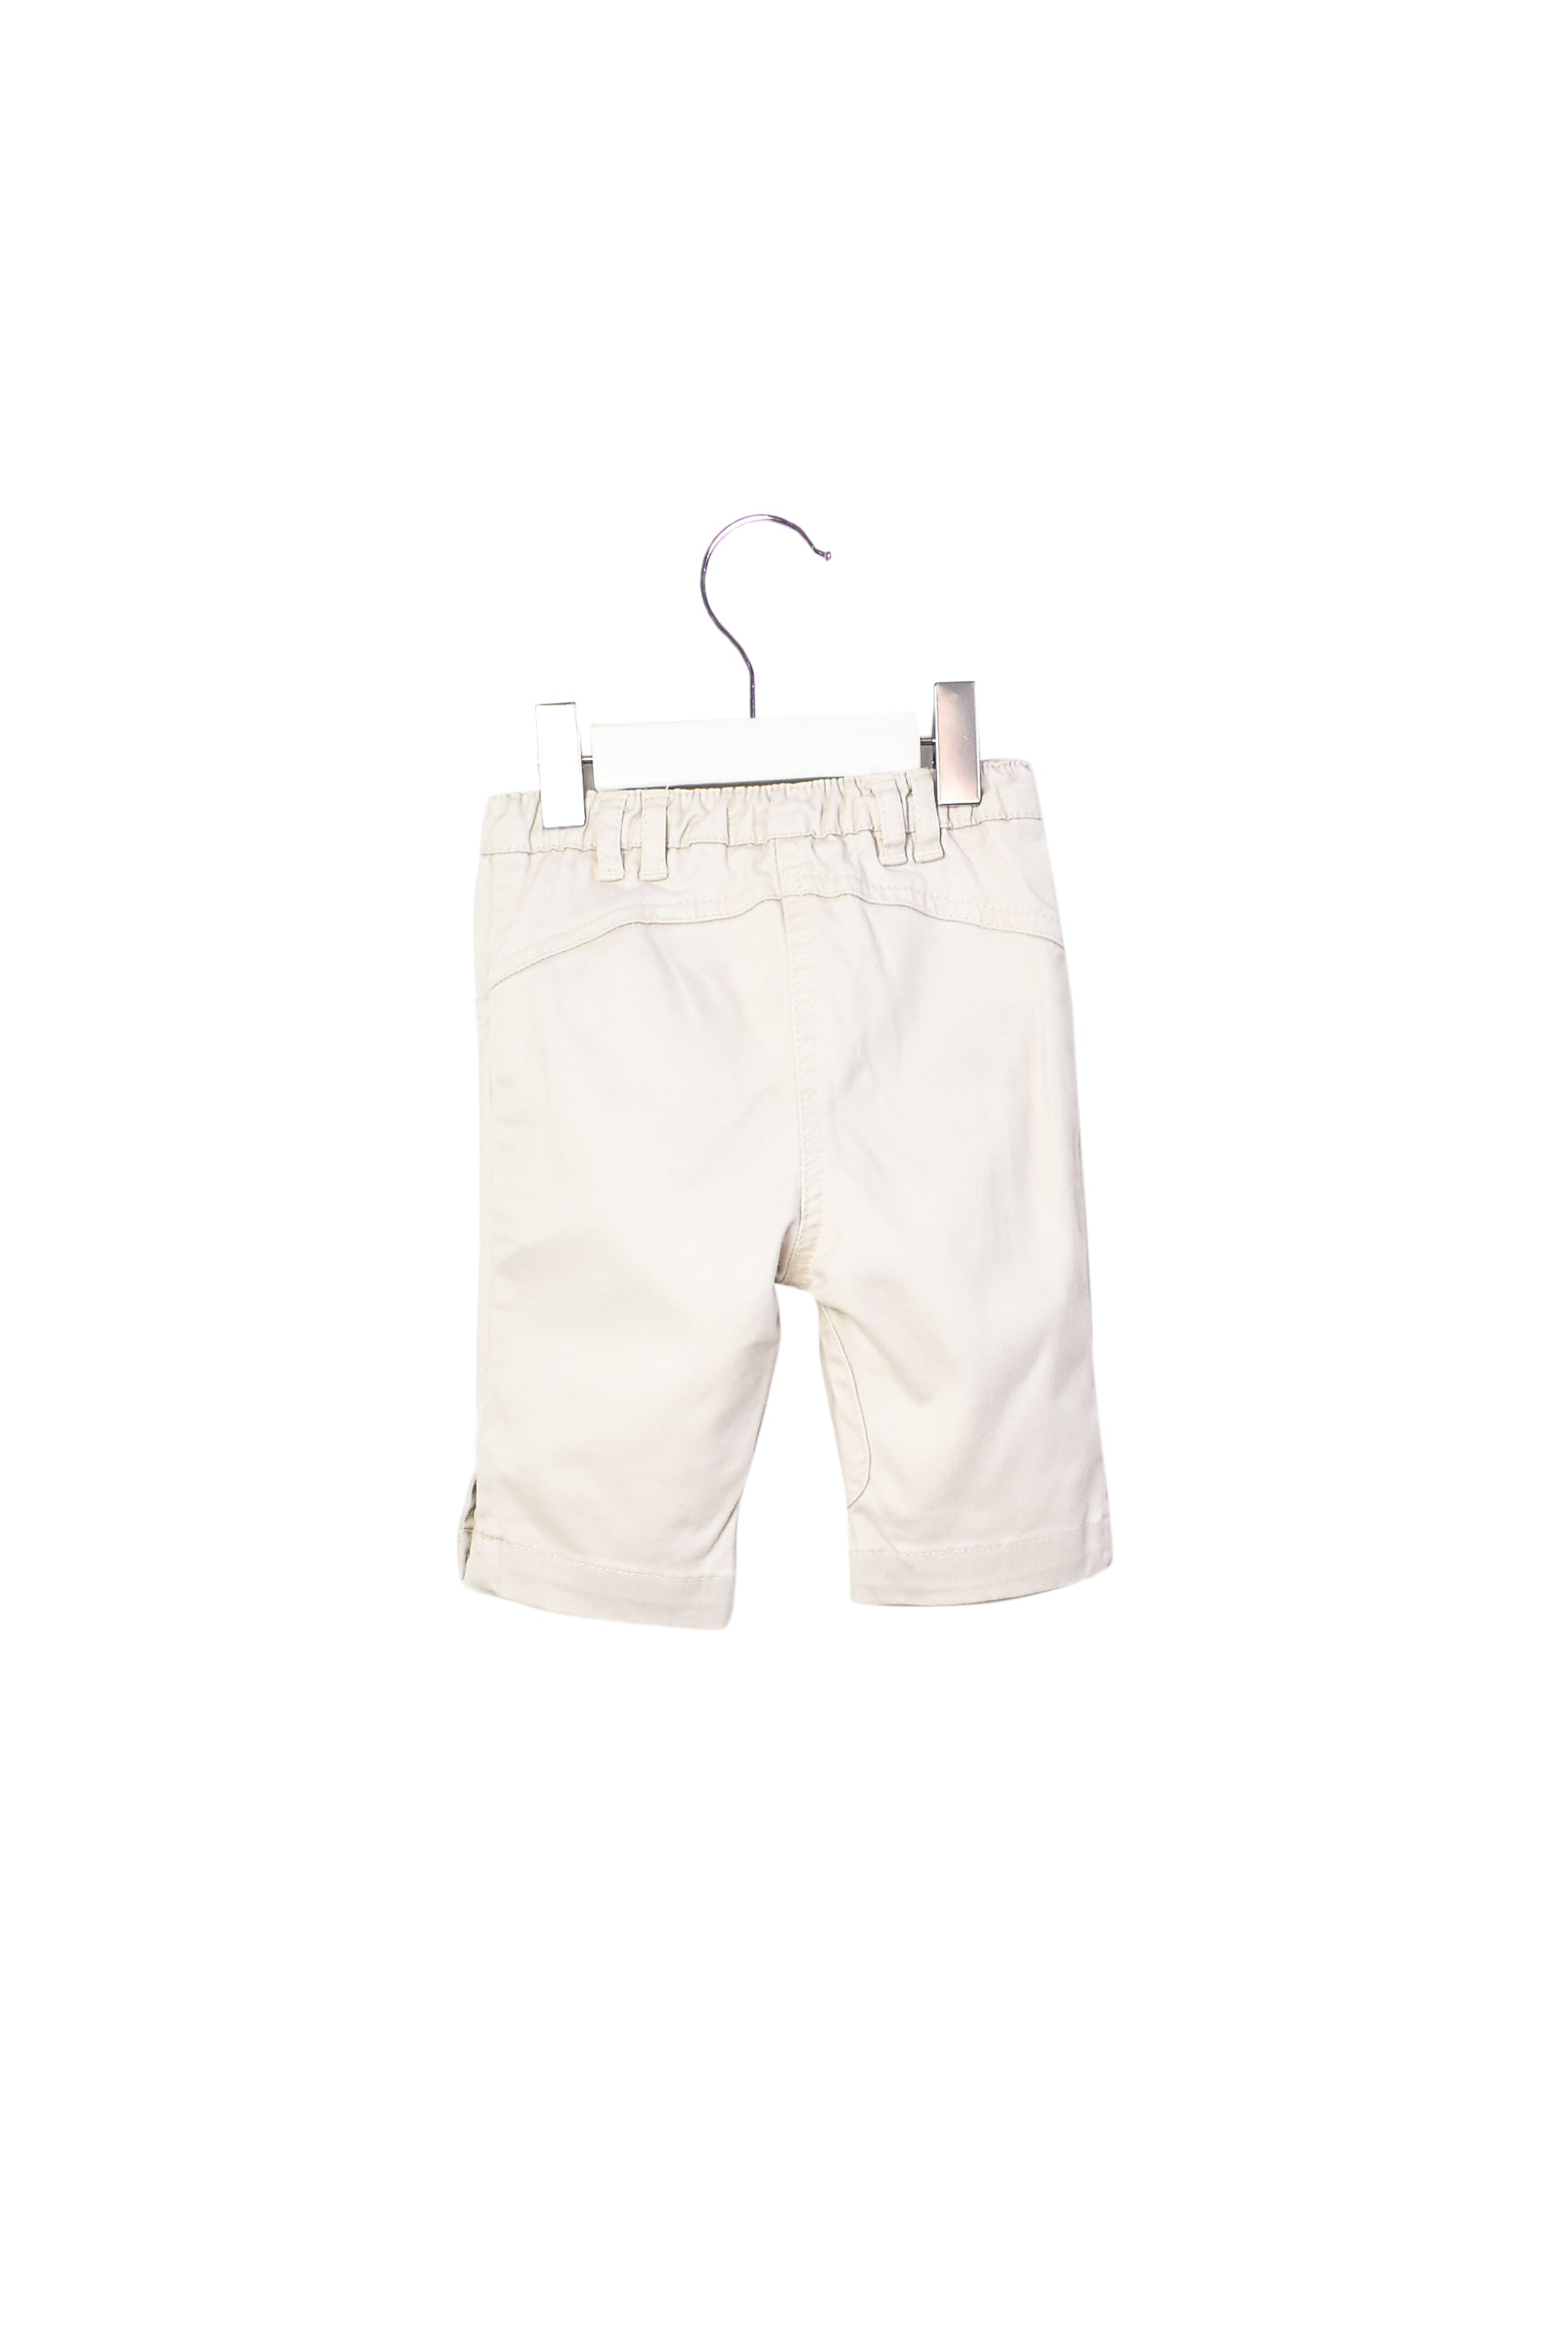 10007770 Jacadi Baby~ Pants 6M at Retykle